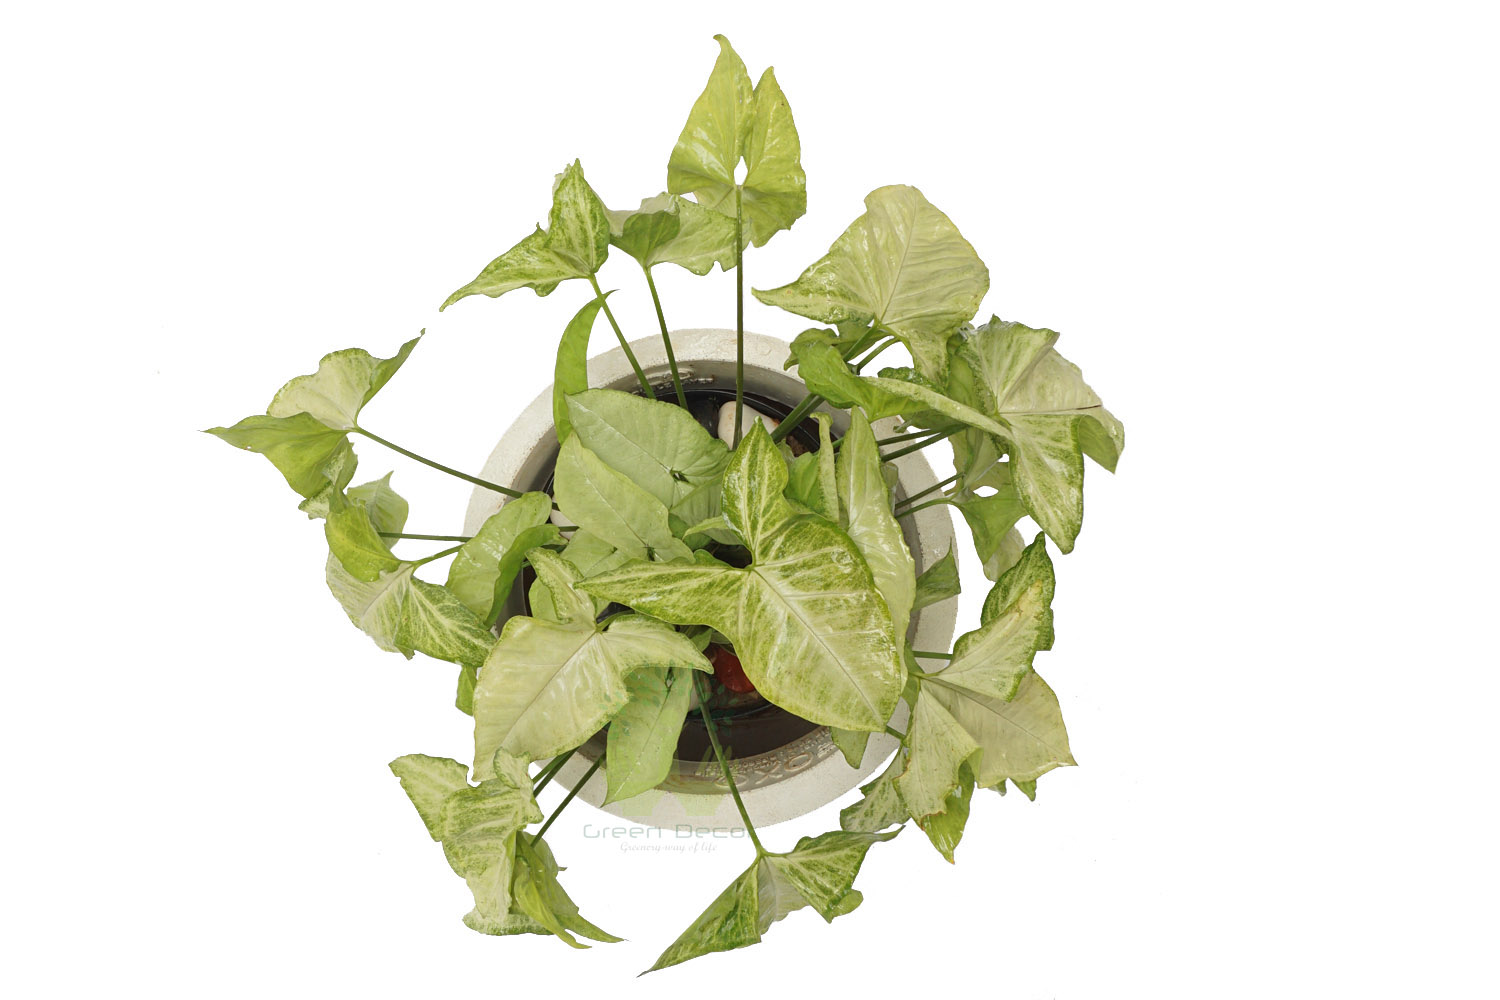 Buy Syngonium Plants , White Pots and seeds in Delhi NCR by the best online nursery shop Greendecor.